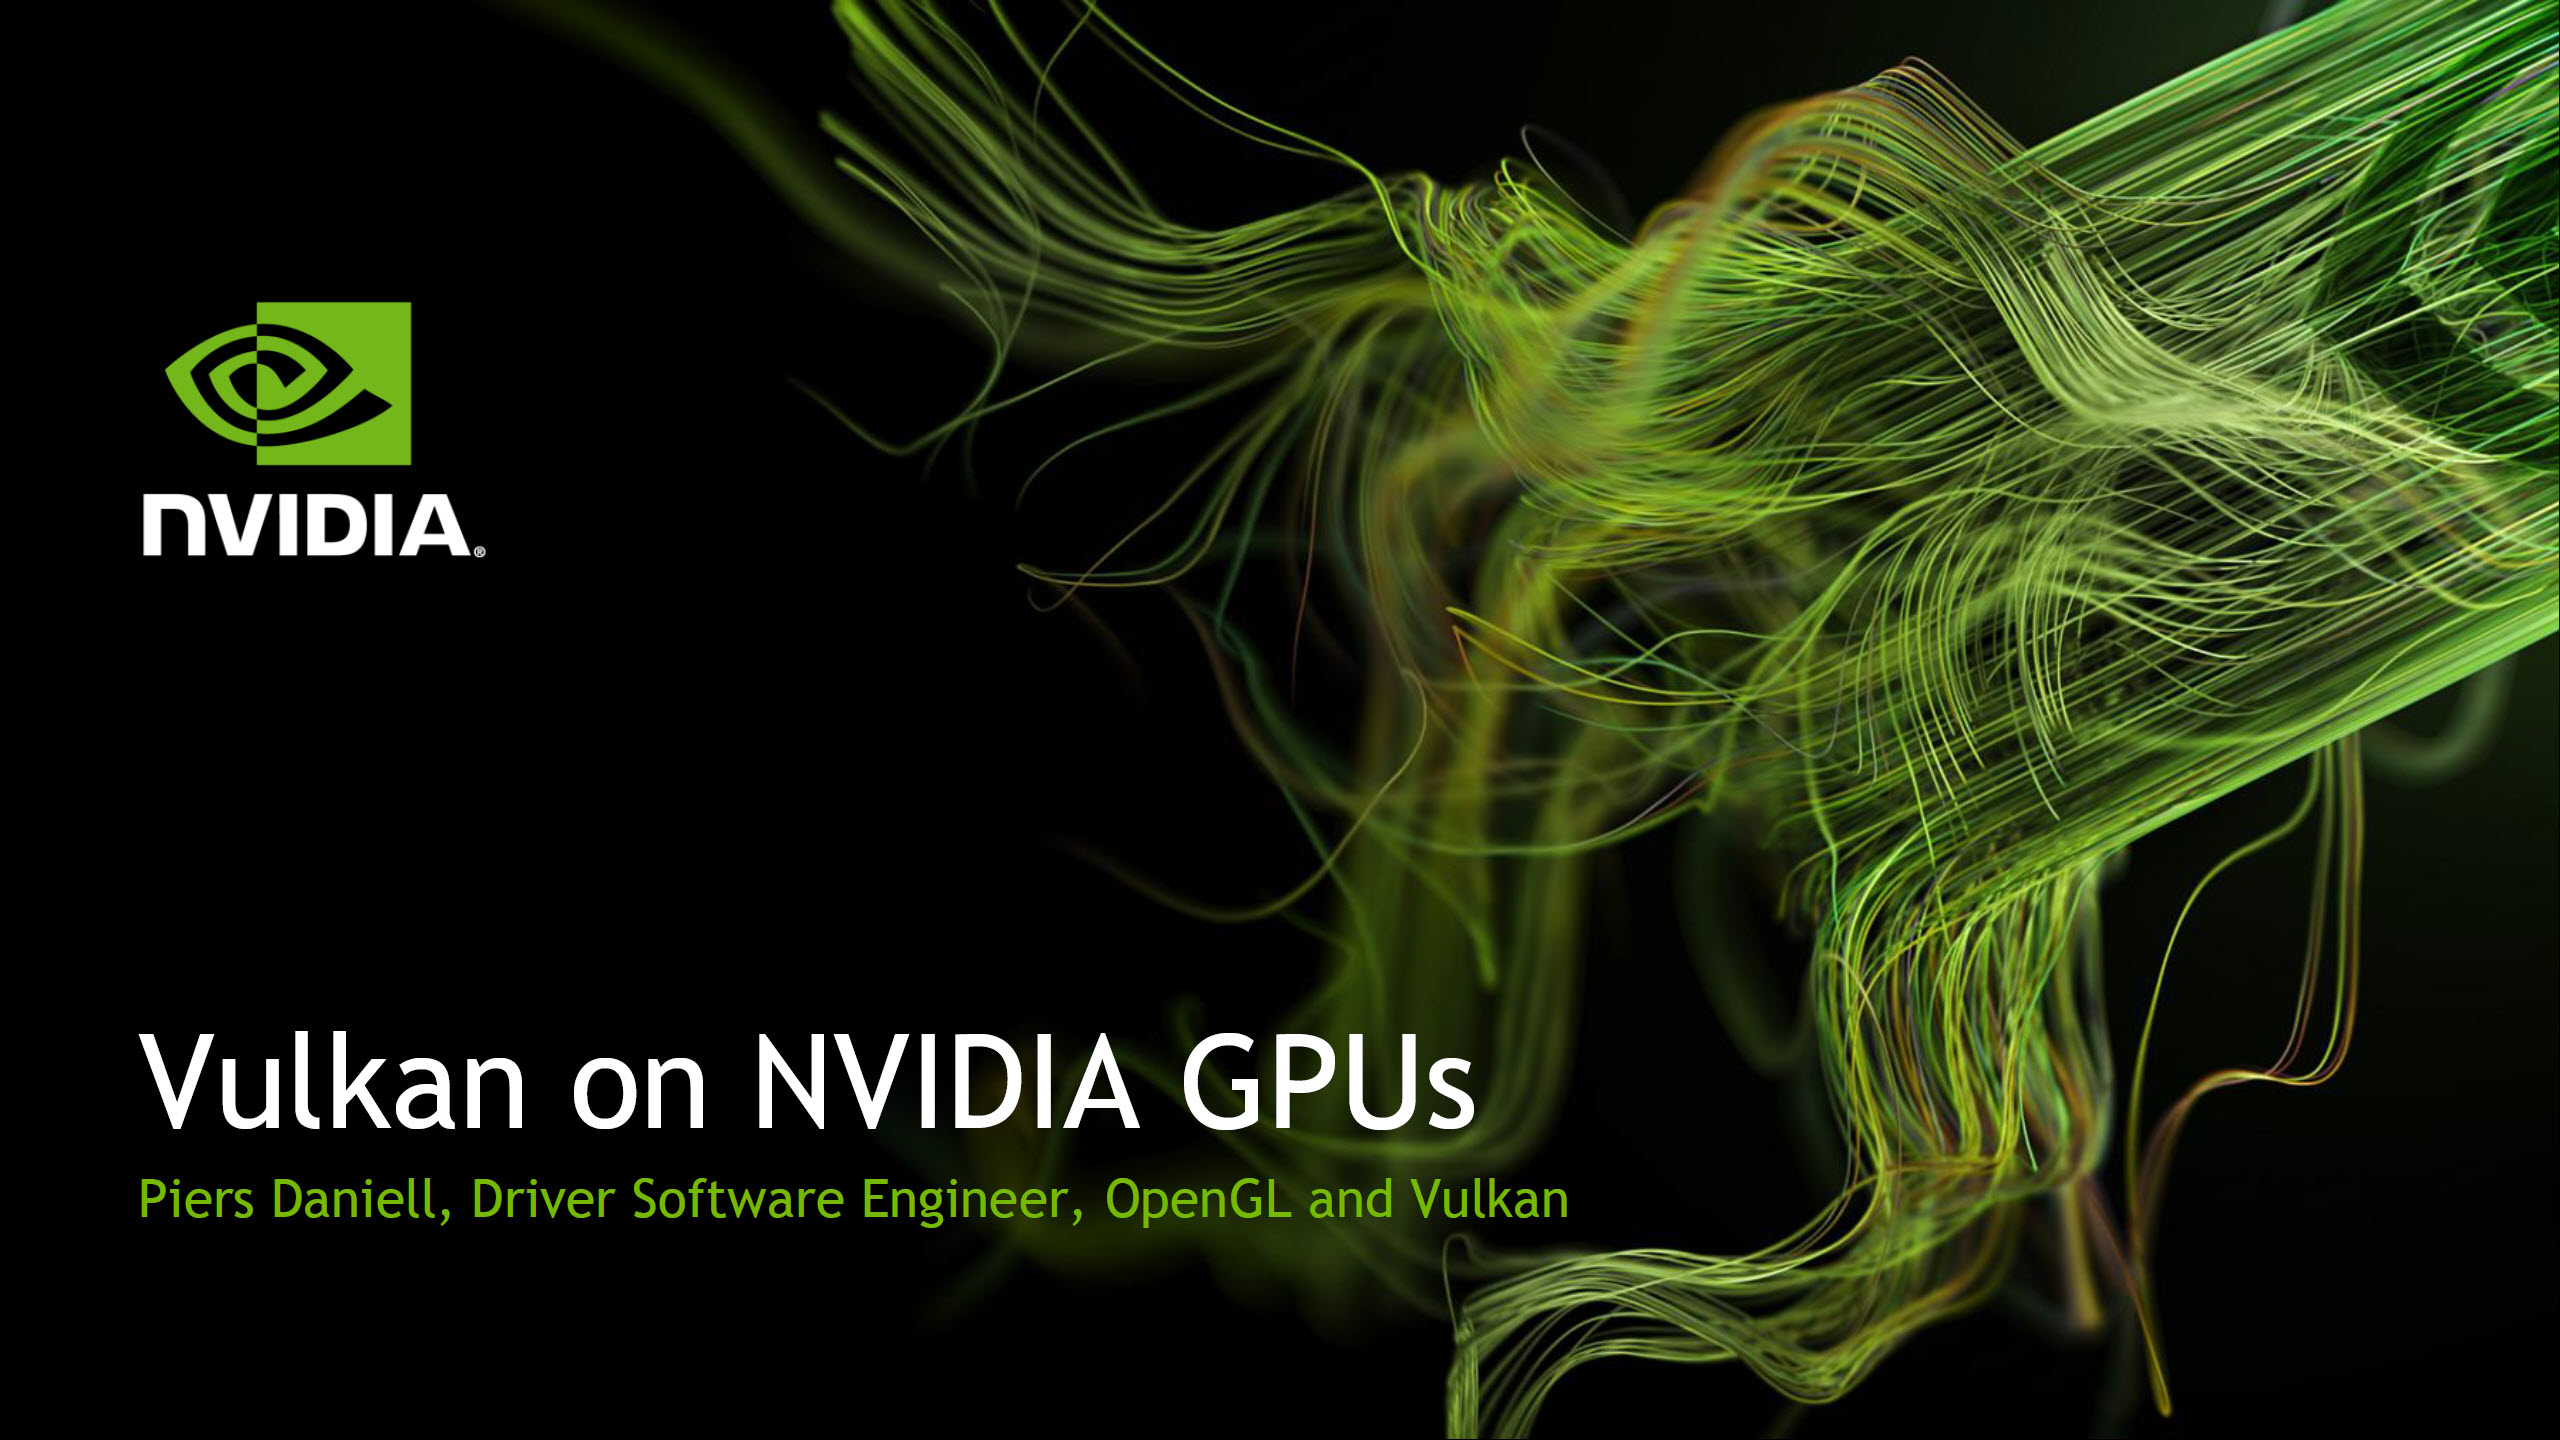 3d Parallel Wallpaper Nvidia Pascal And Volta Gpus Now Supported By Latest